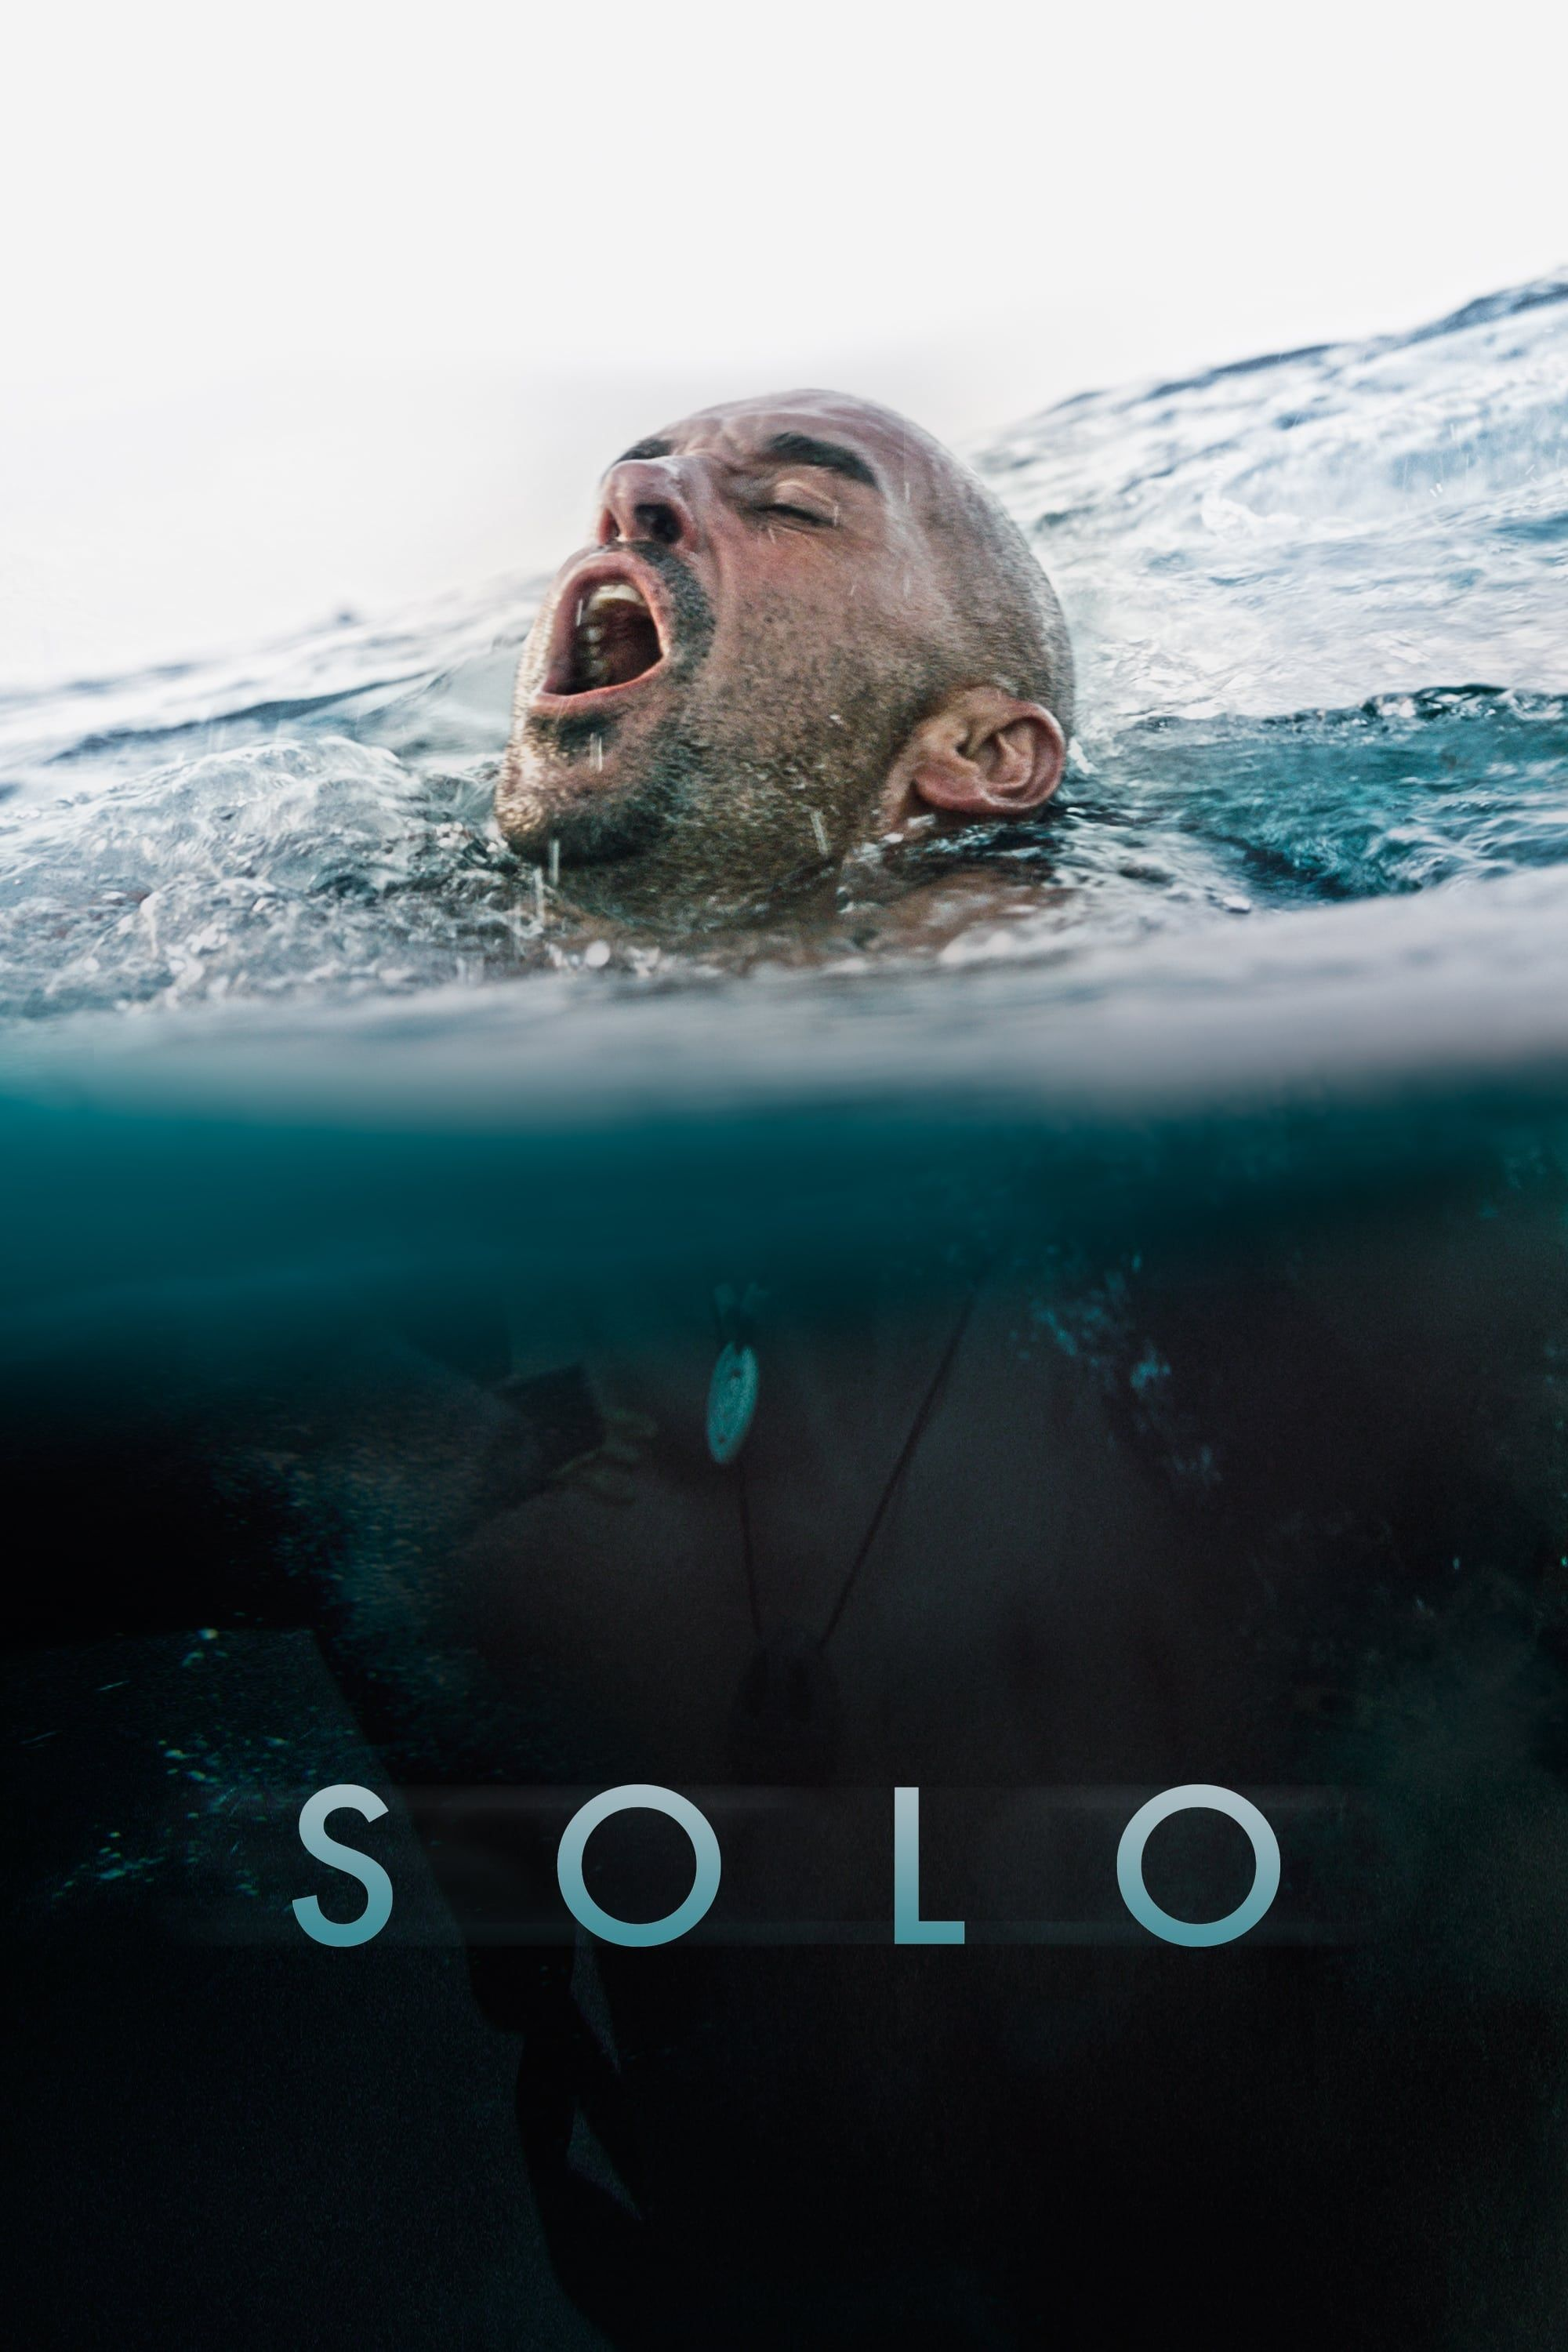 Solo 2018 streaming vf